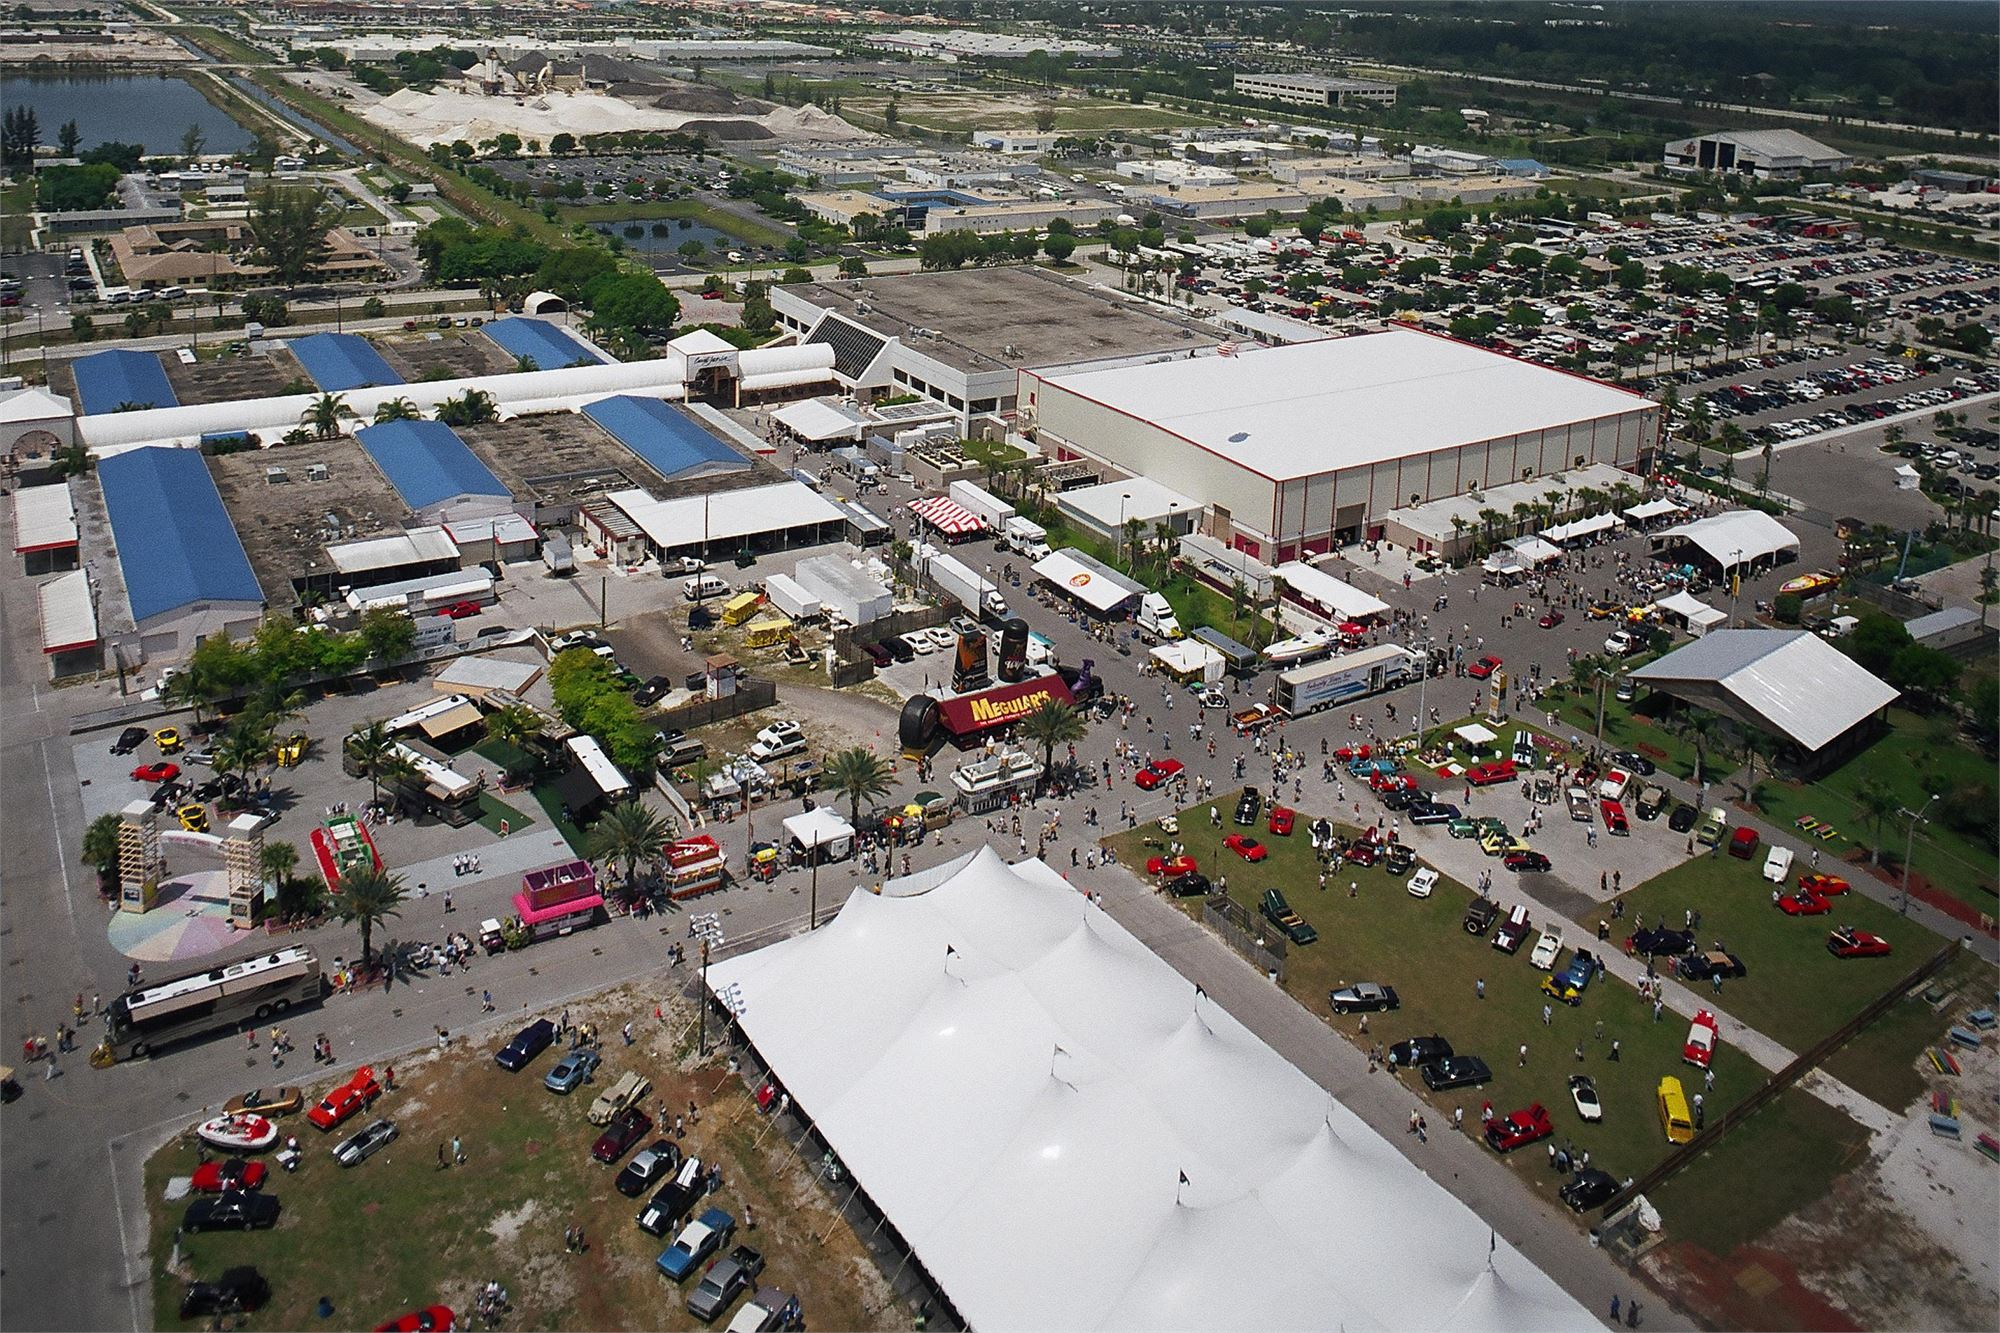 Facilities Map Throughout South Florida Fairgrounds Event for Town Of Oyster Bay Sanitation Calendar 2022